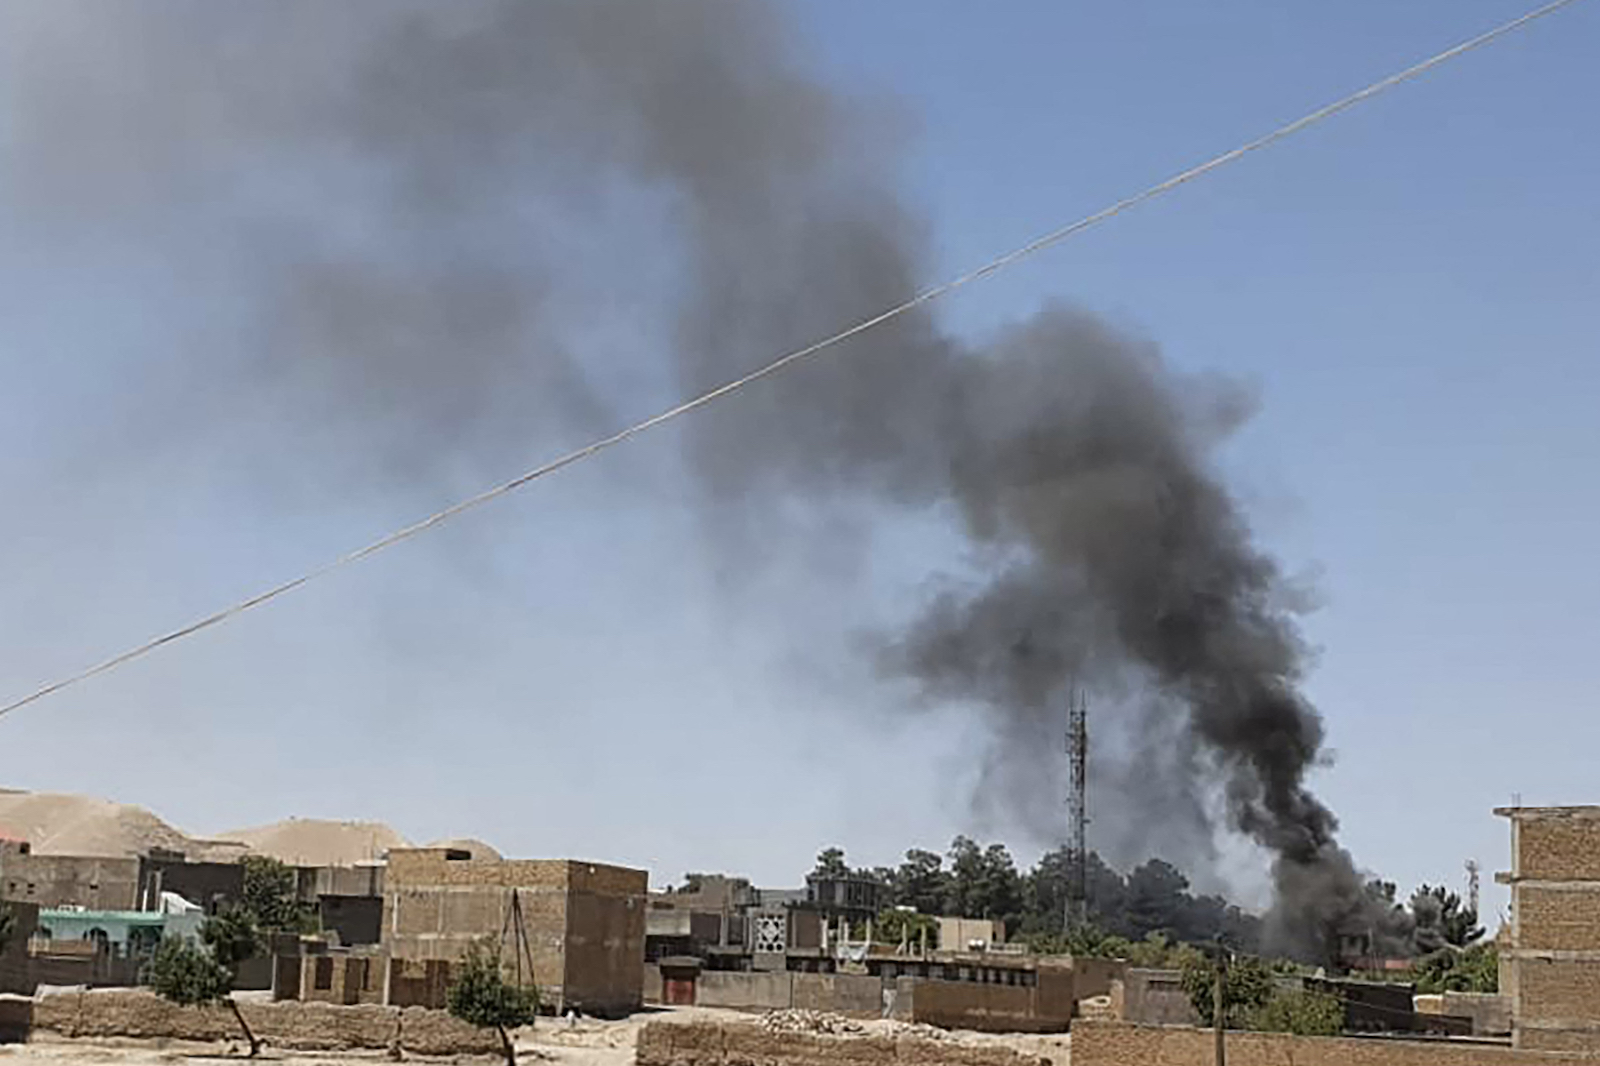 A smoke plume rises from houses amid an ongoing fight between Afghan security forces and Taliban fighters in the western city of Qala-i- Naw, the capital of Badghis province, on July 7. The Taliban launched its first major assault on a provincial capital since the US military began its final drawdown of troops from the country. Photo: AFP